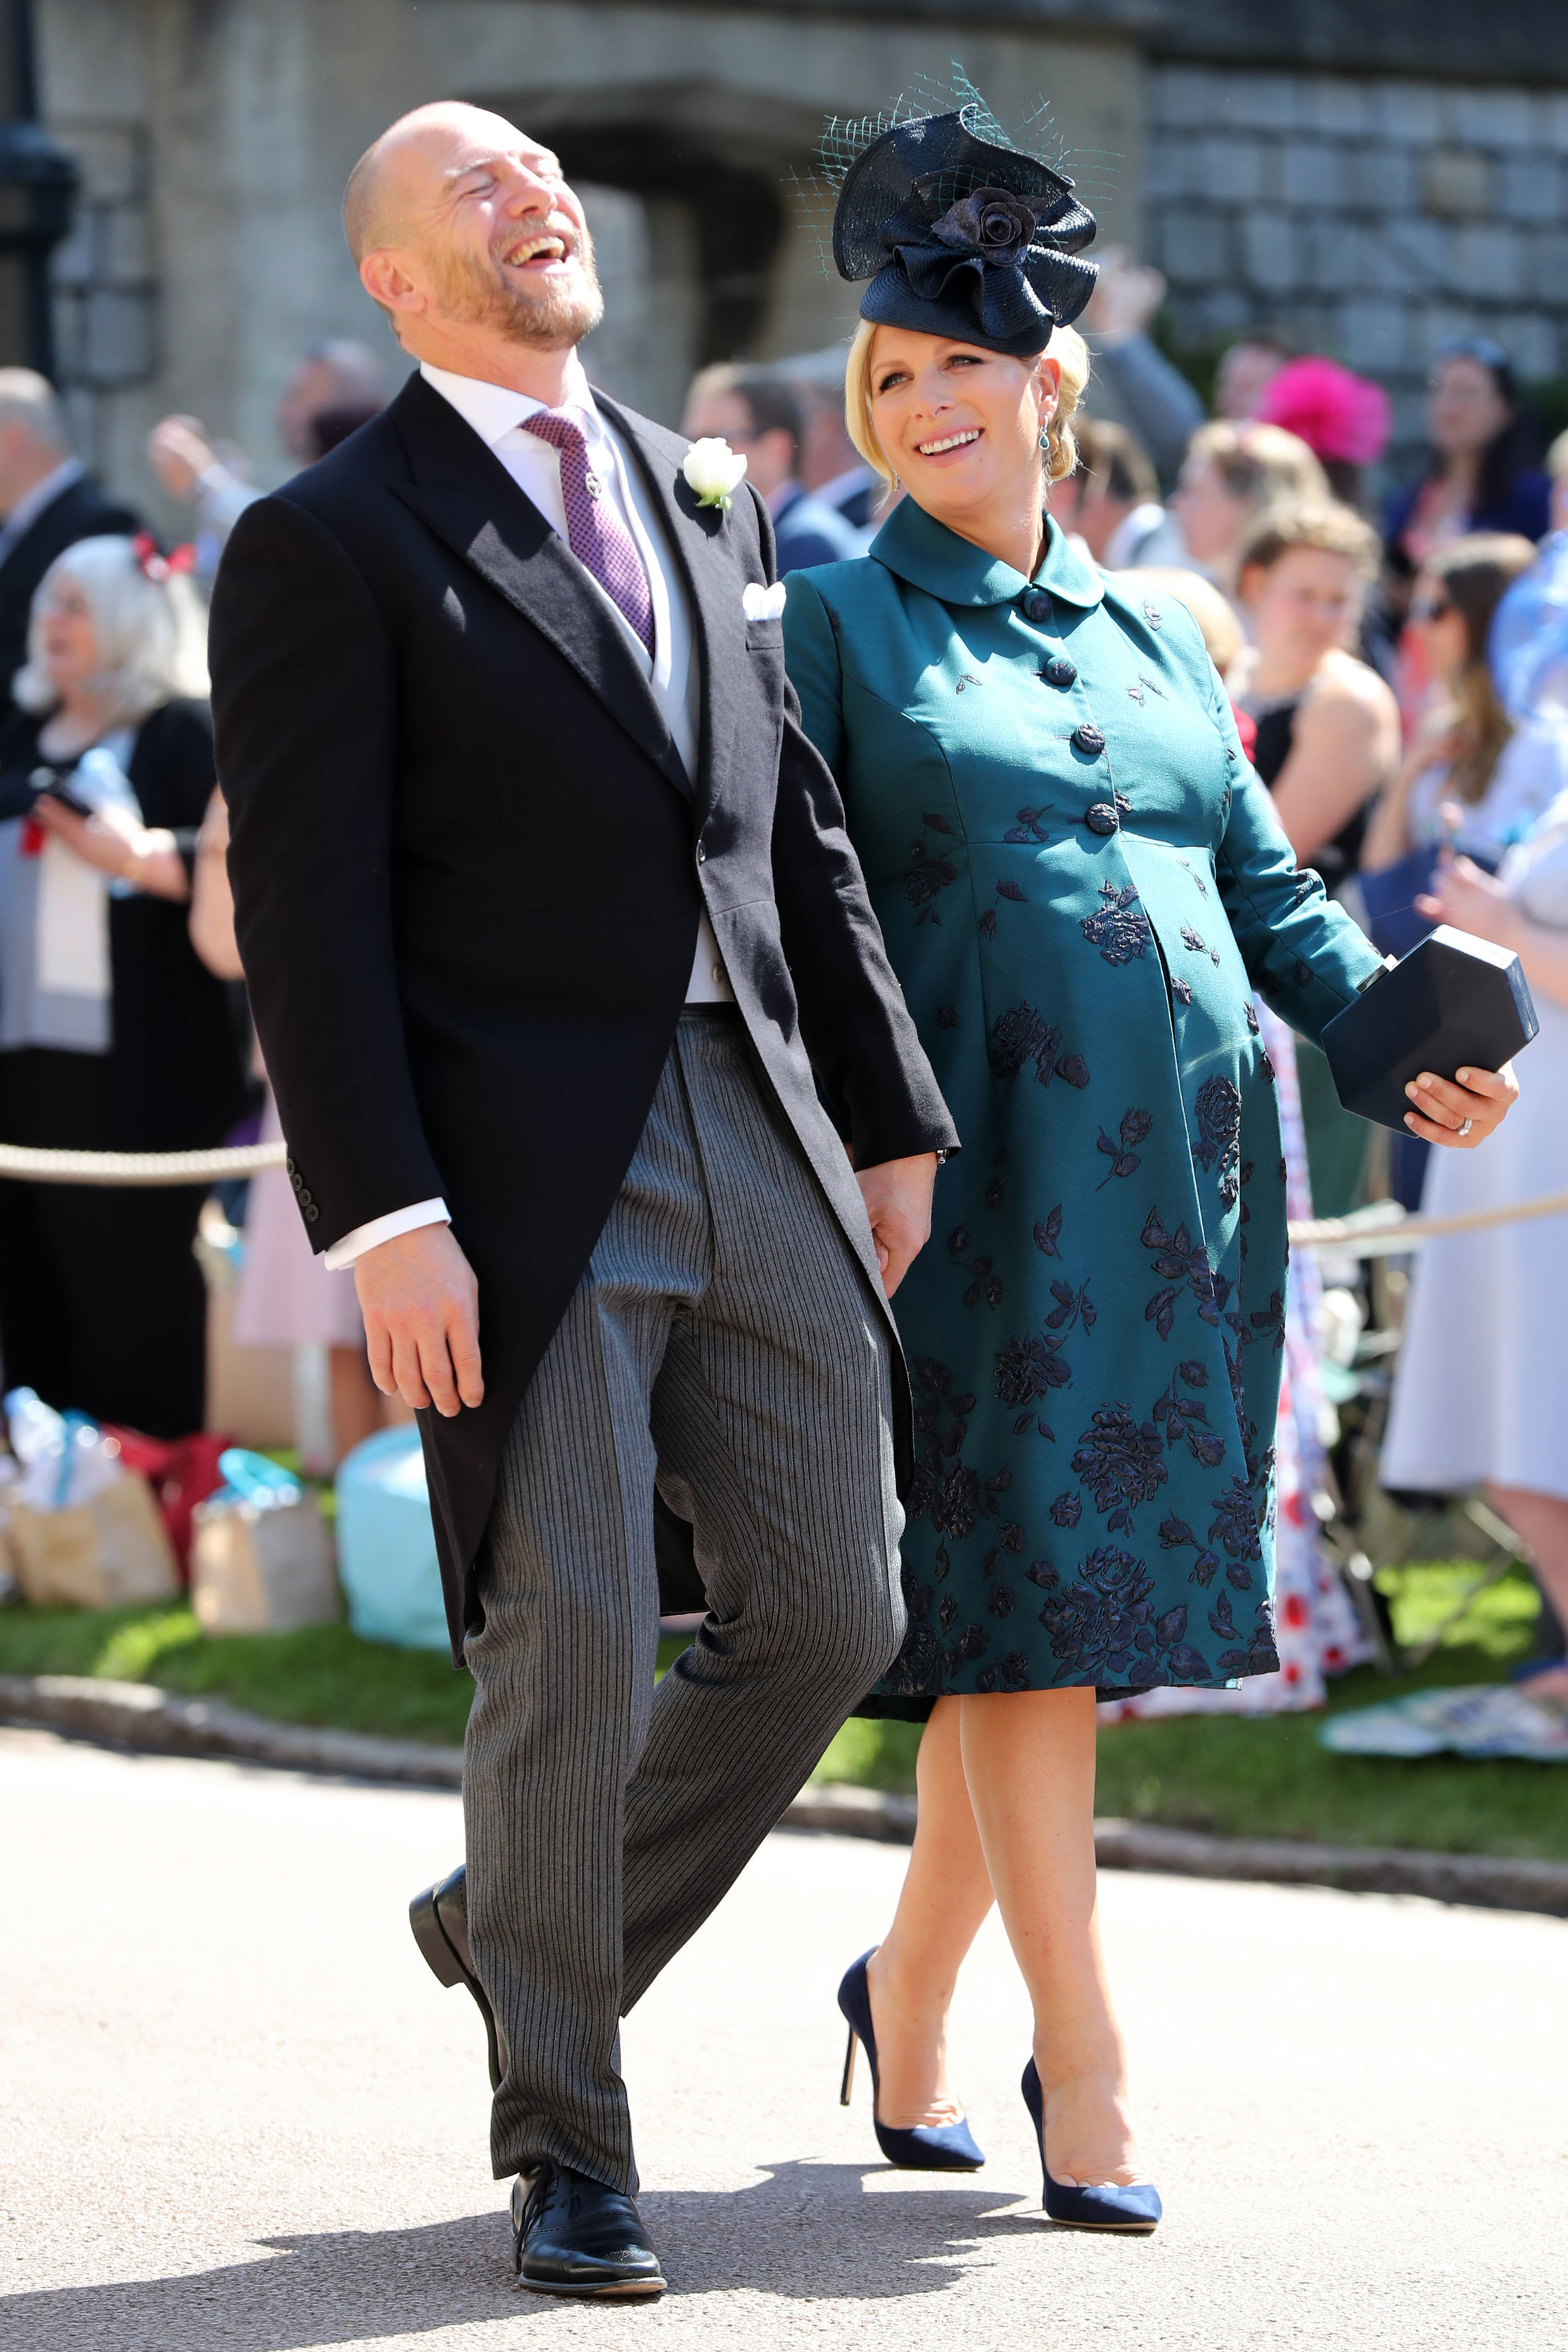 Mike Tindall and Zara Tindall arrive at St George's Chapel at Windsor Castle before the wedding of Prince Harry to Meghan Markle on May 19, 2018 in Windsor, England (Getty Images)